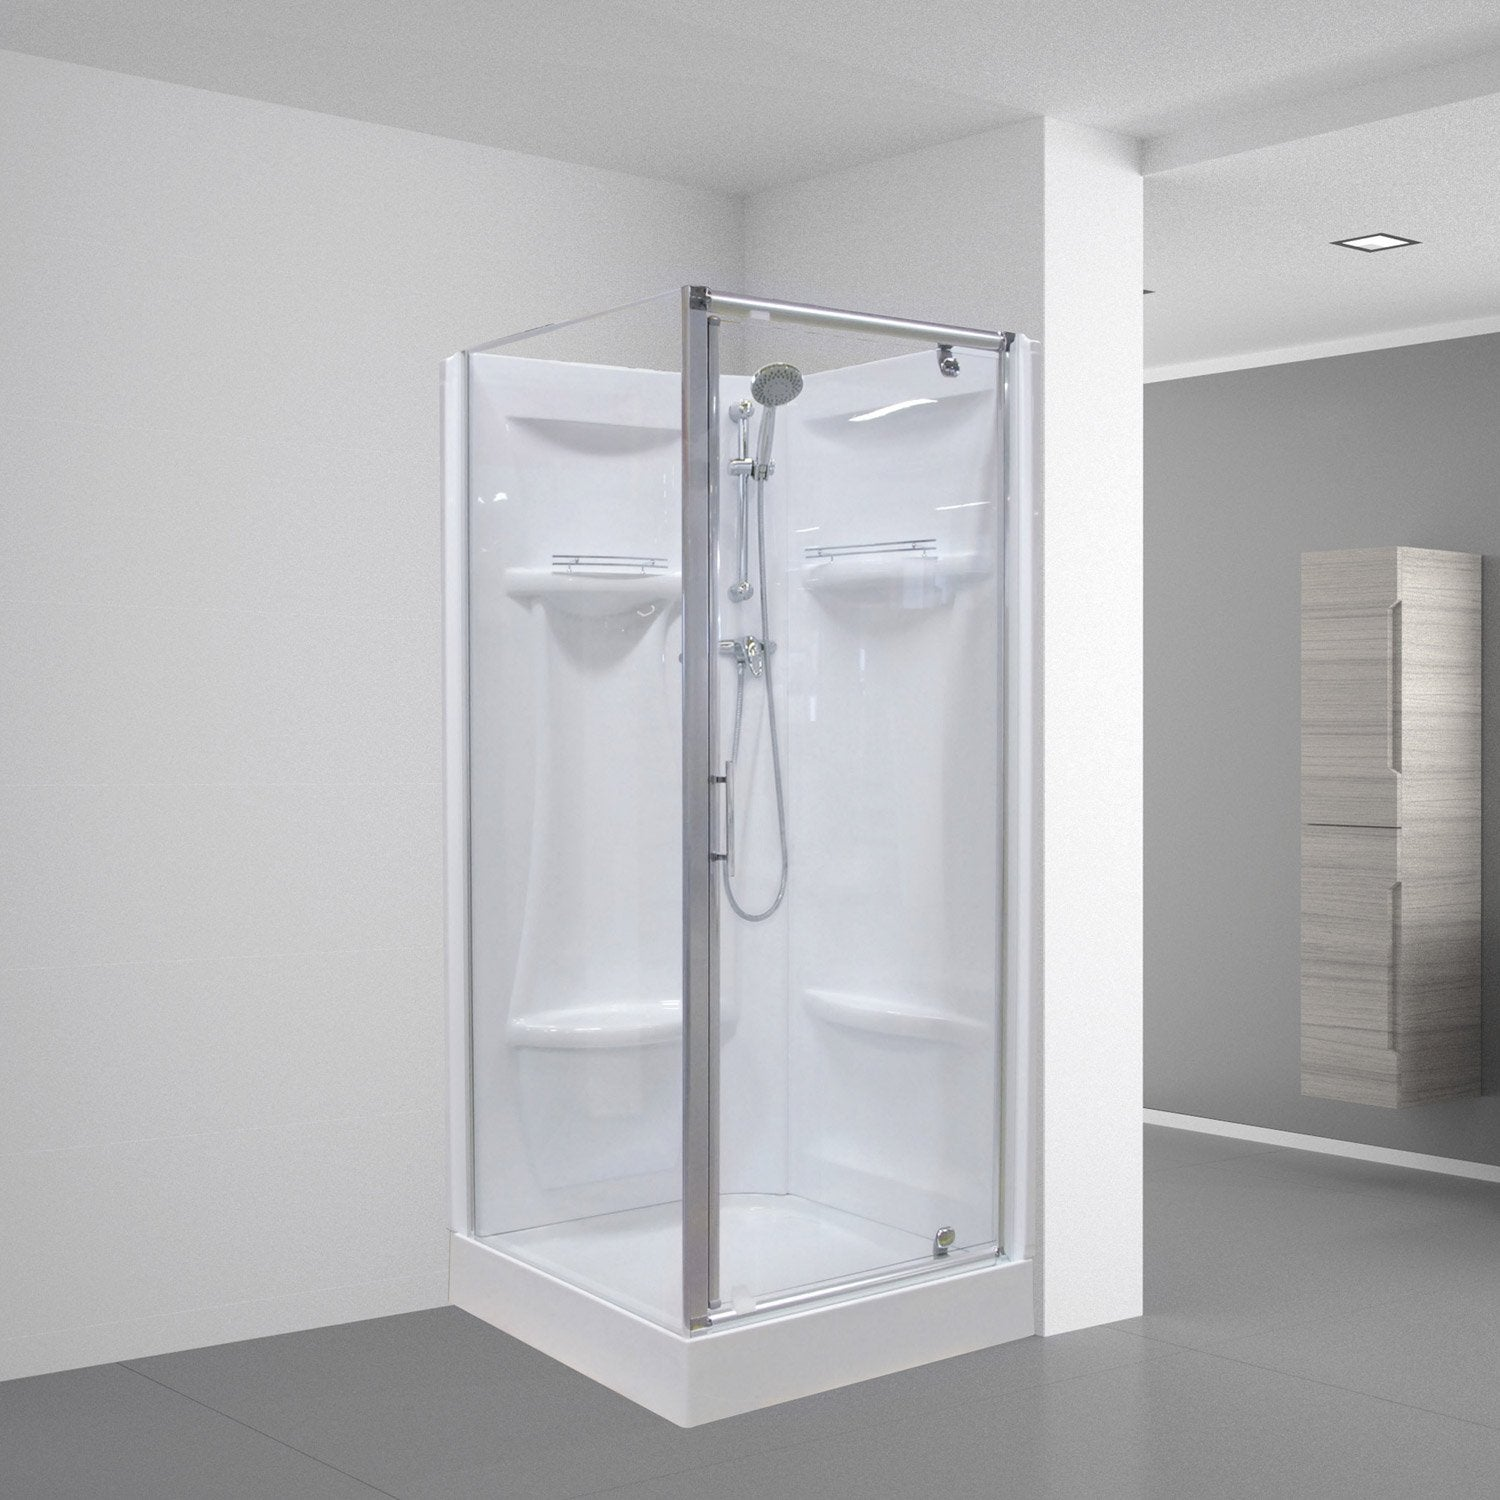 Cabine de douche dana simple carr 90x90 cm leroy merlin - Cabine de douche simple ...